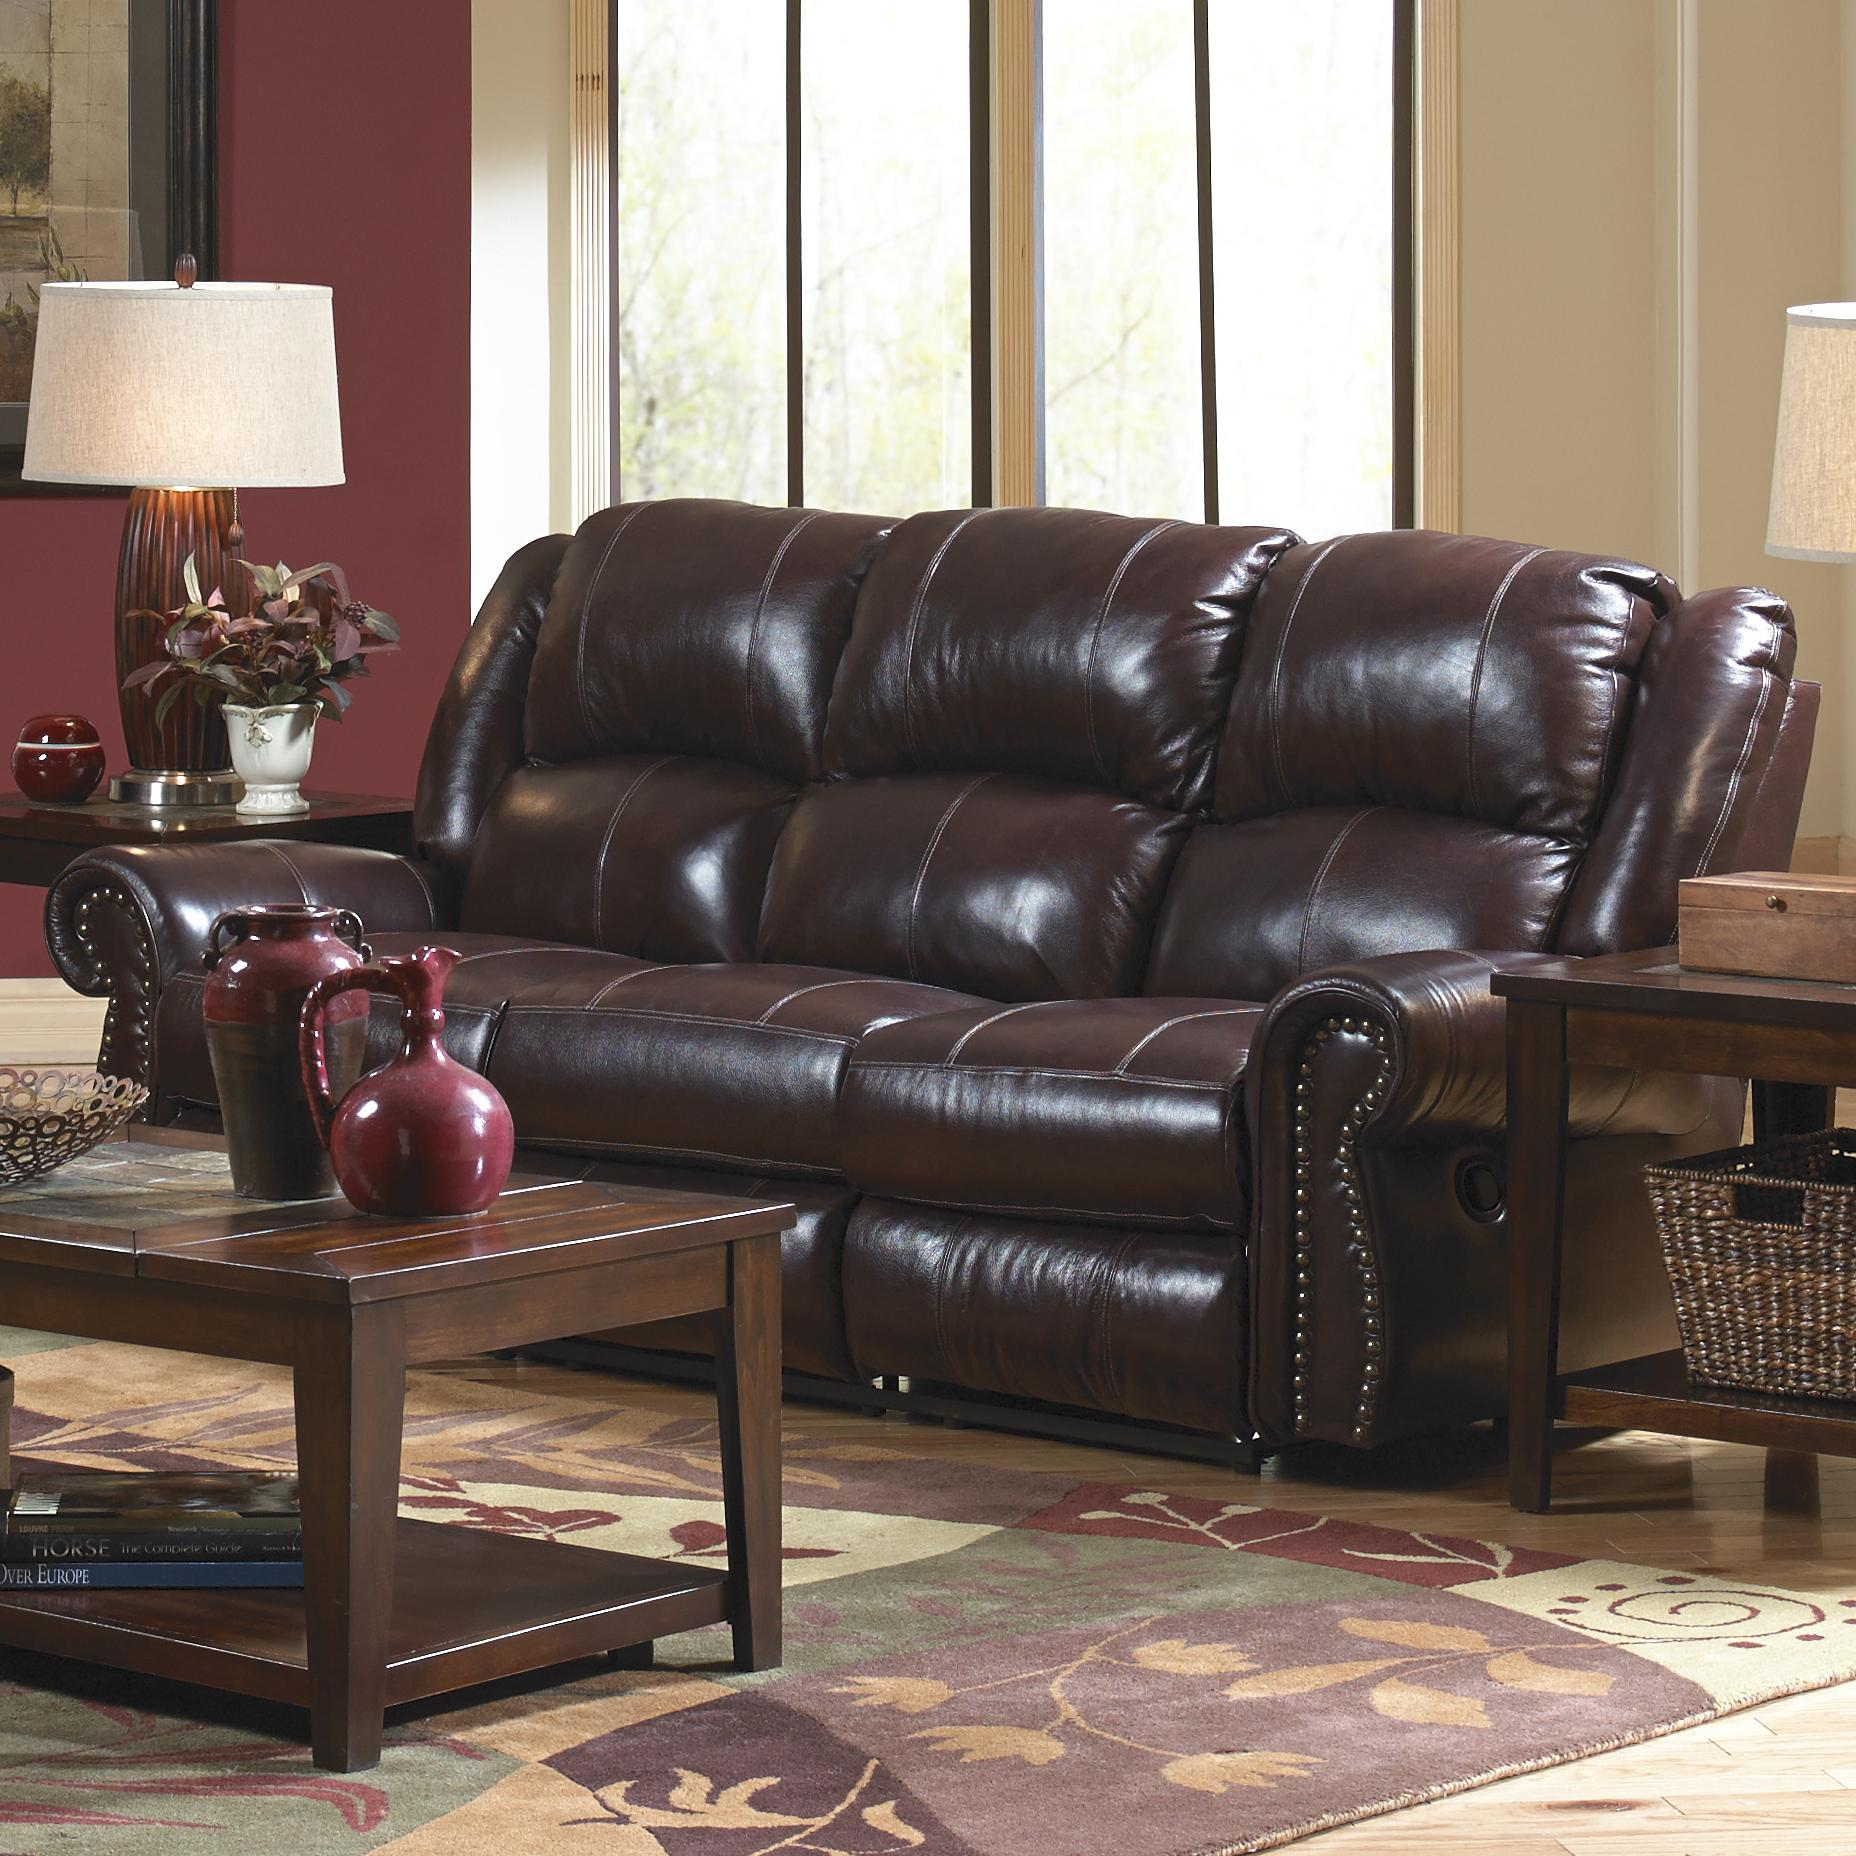 Catnapper Livingston Power Reclining Sofa with Drop Down Table and